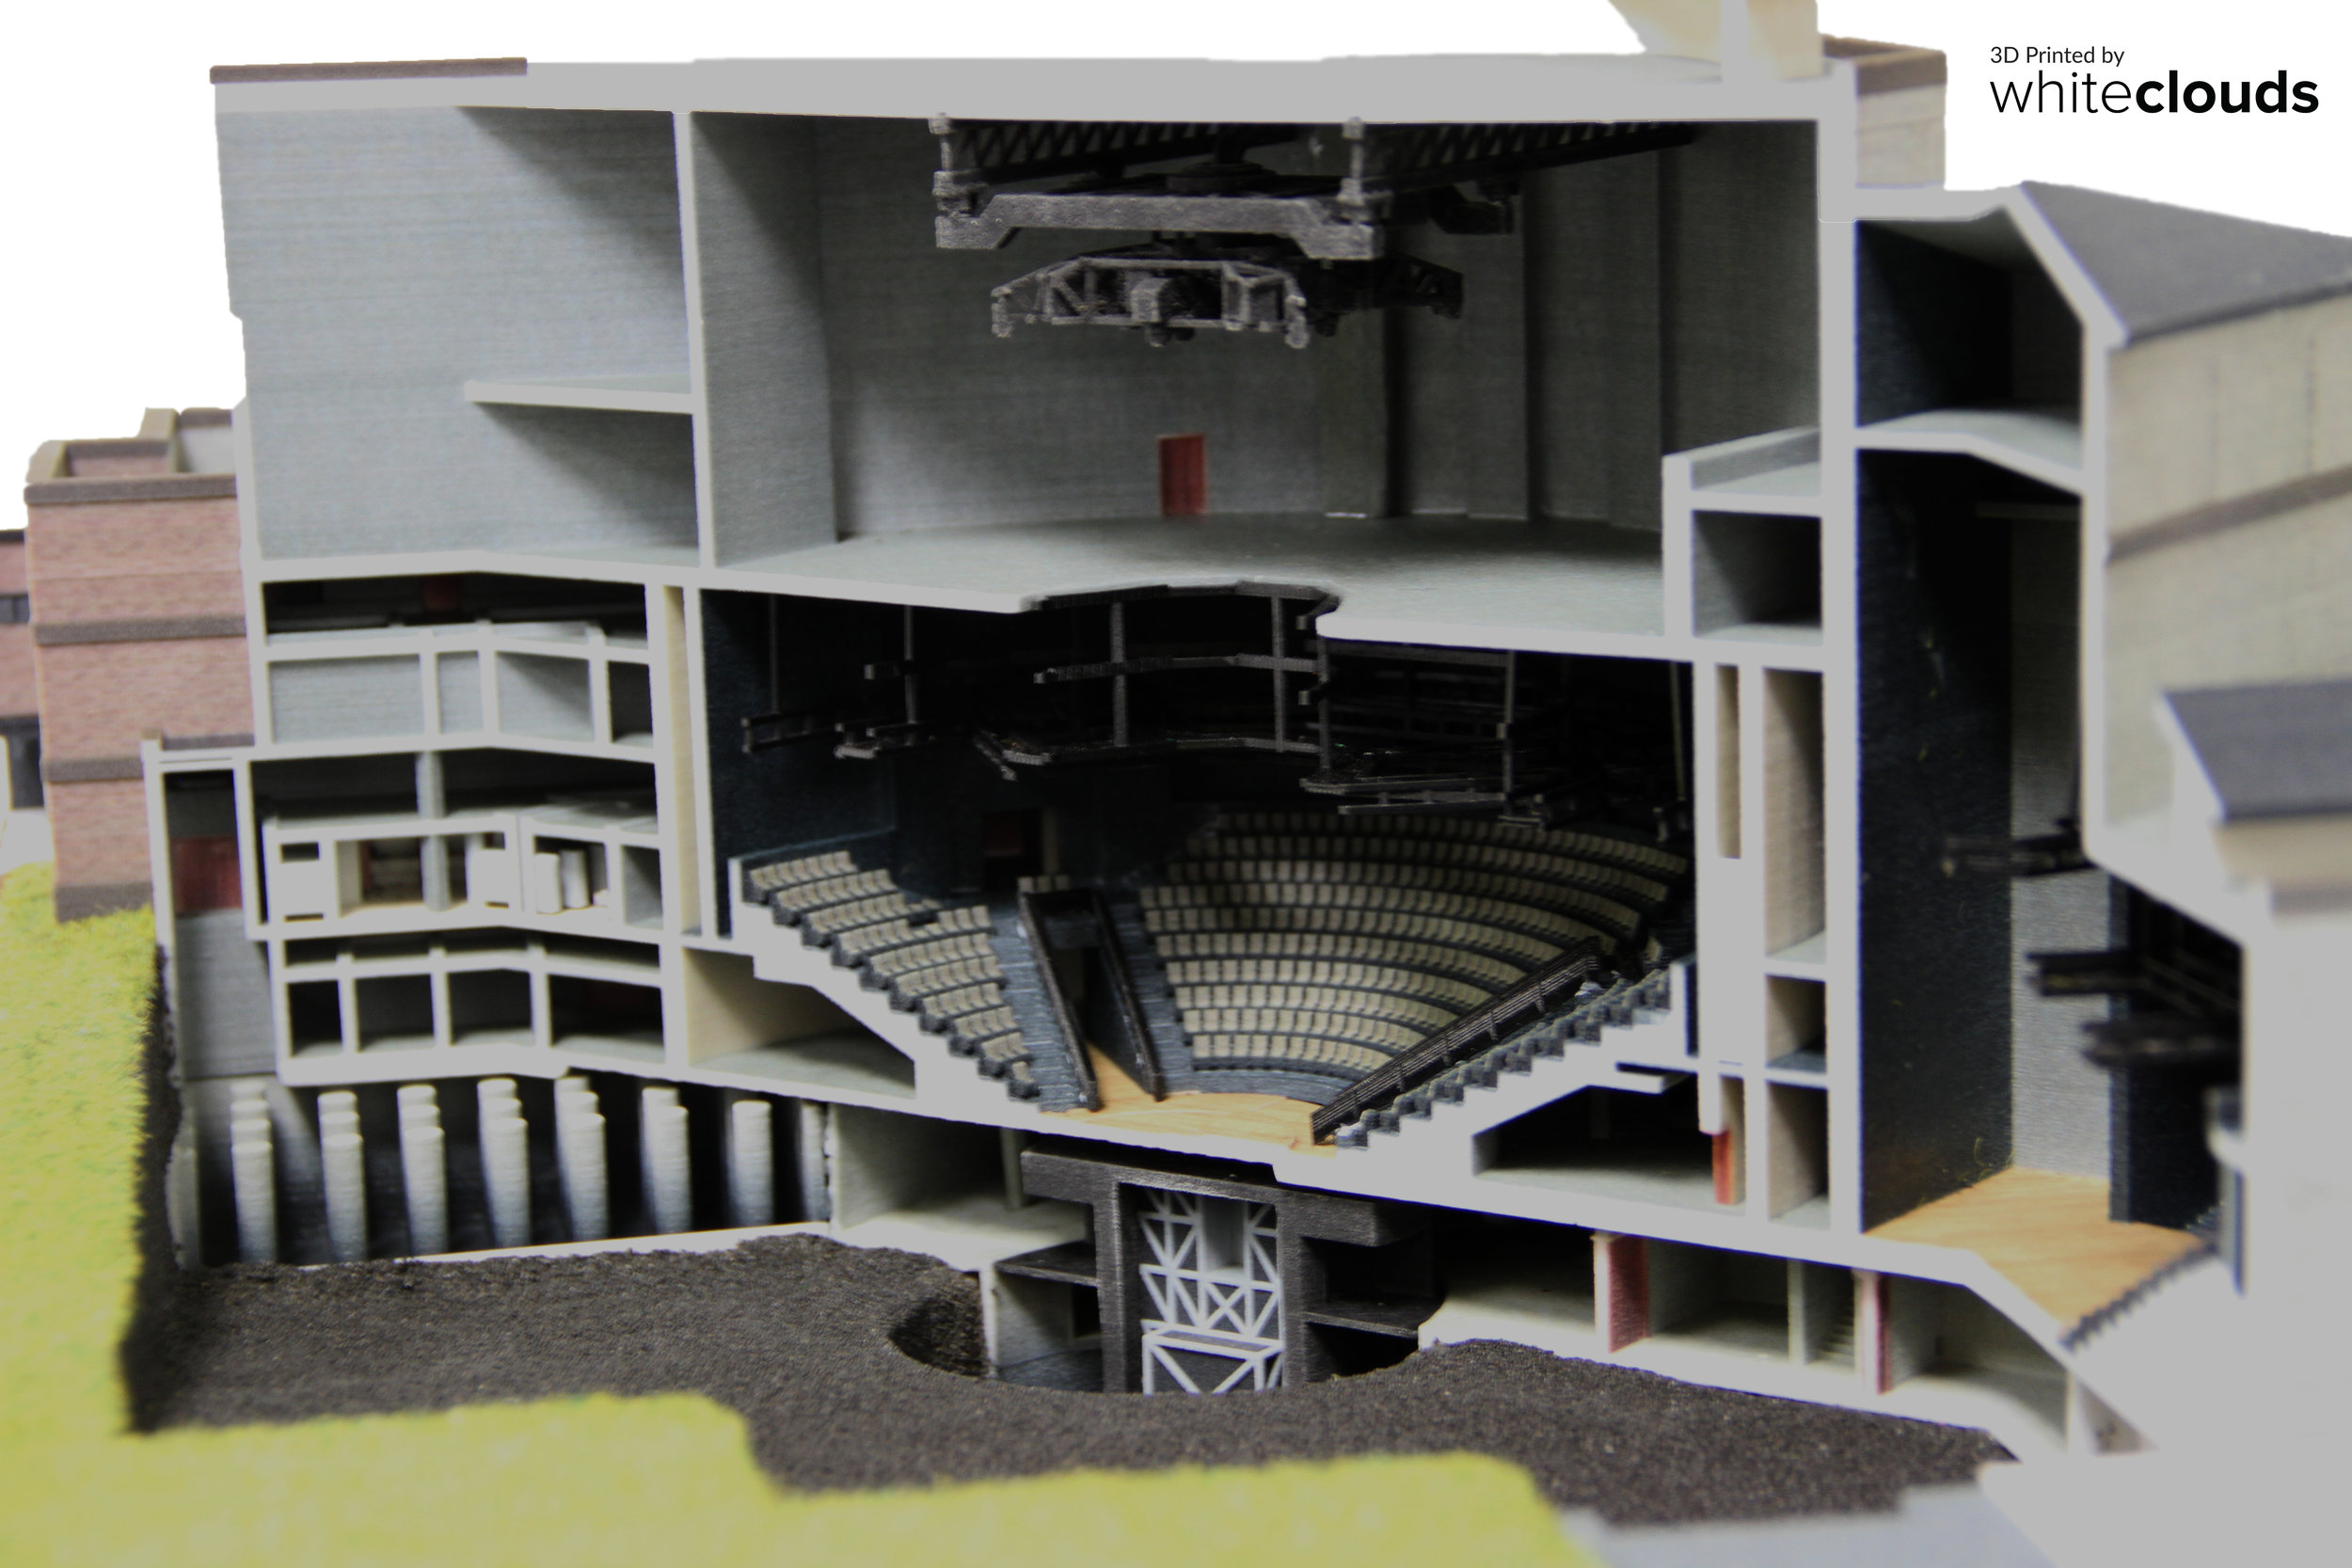 3D-Printed-WhiteClouds-Theater-Architectural-Hale-Center-Theater-3.JPG